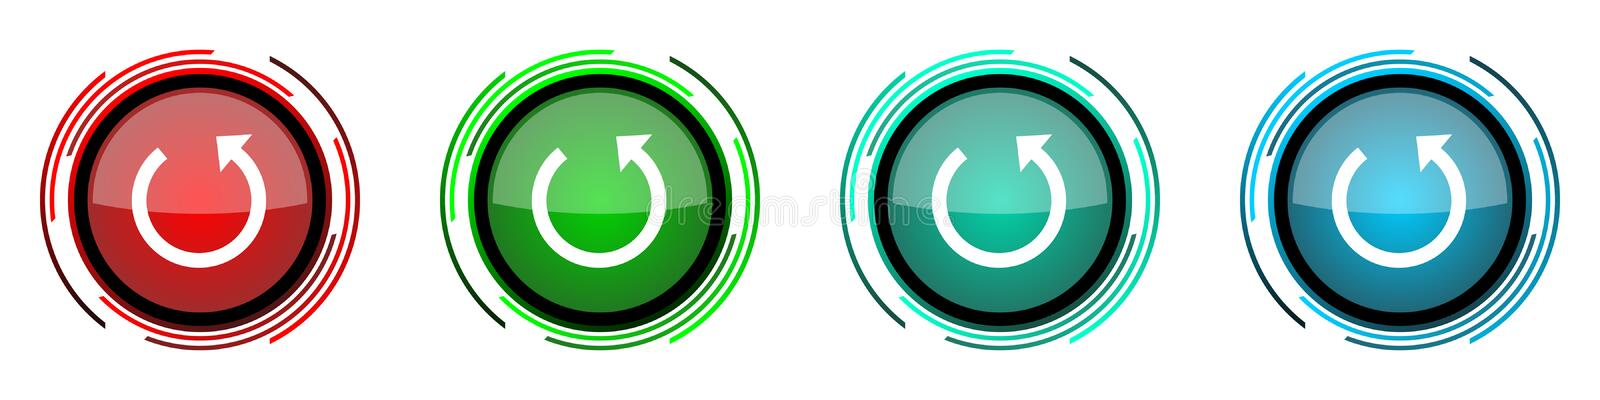 Rotate round glossy vector icons, set of buttons for webdesign, internet and mobile phone applications in four colors options. Isolated on white stock illustration